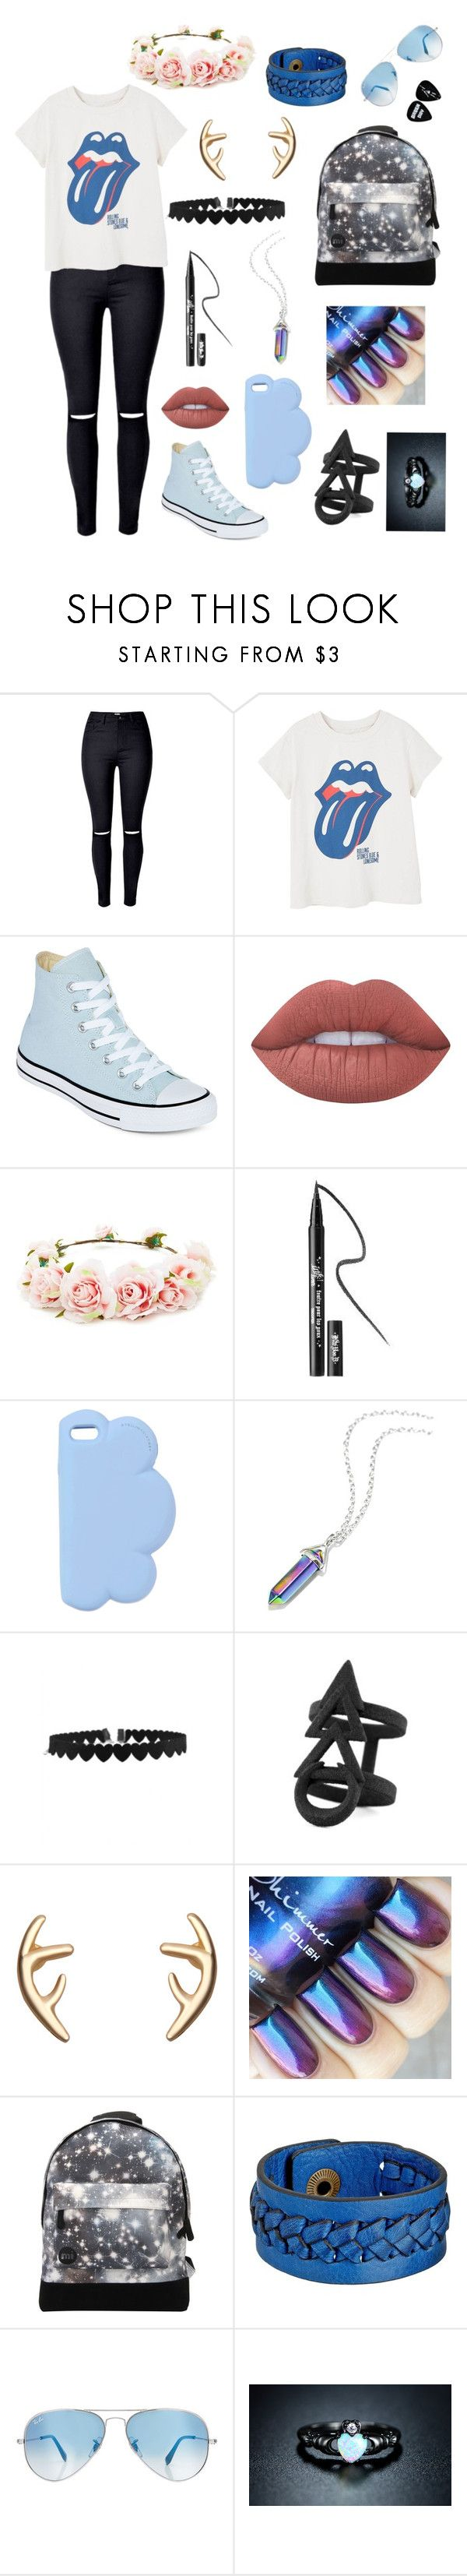 """Flower Child (not)"" by inspirationstrikes ❤ liked on Polyvore featuring MANGO, Converse, Lime Crime, Forever 21, Kat Von D, STELLA McCARTNEY, Rune NYC, Mi-Pac, Frye and Ray-Ban"